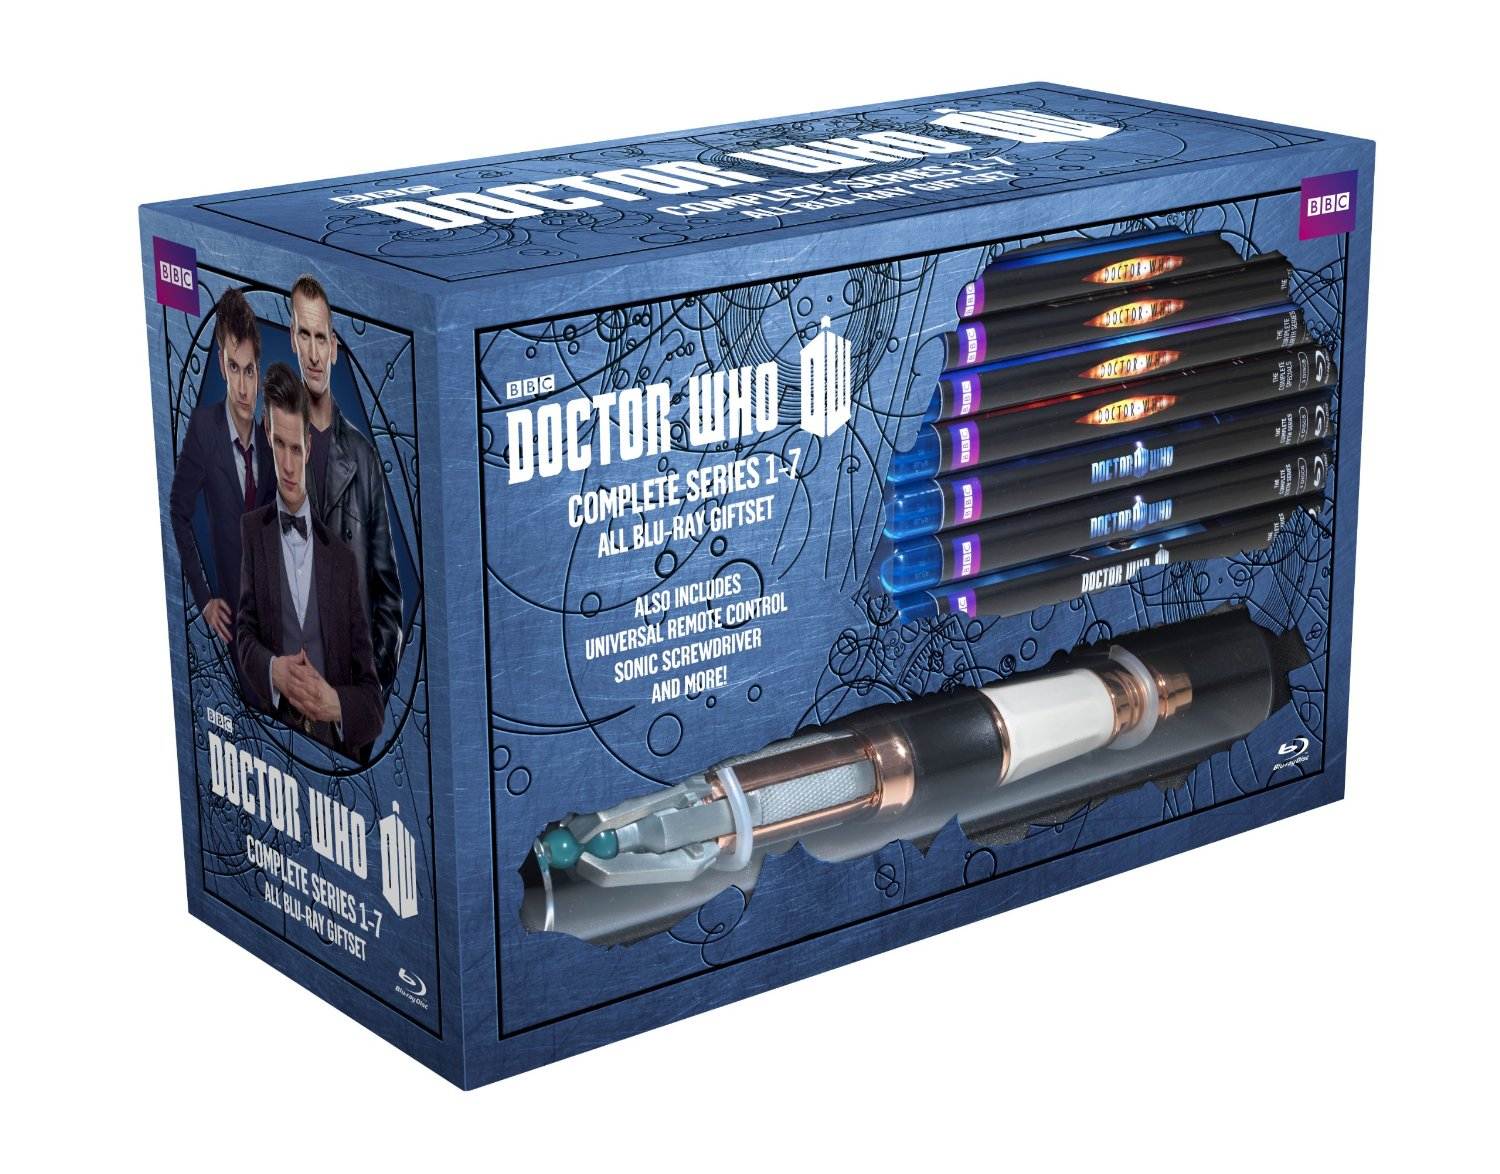 Dr Who blu Ray Box Set